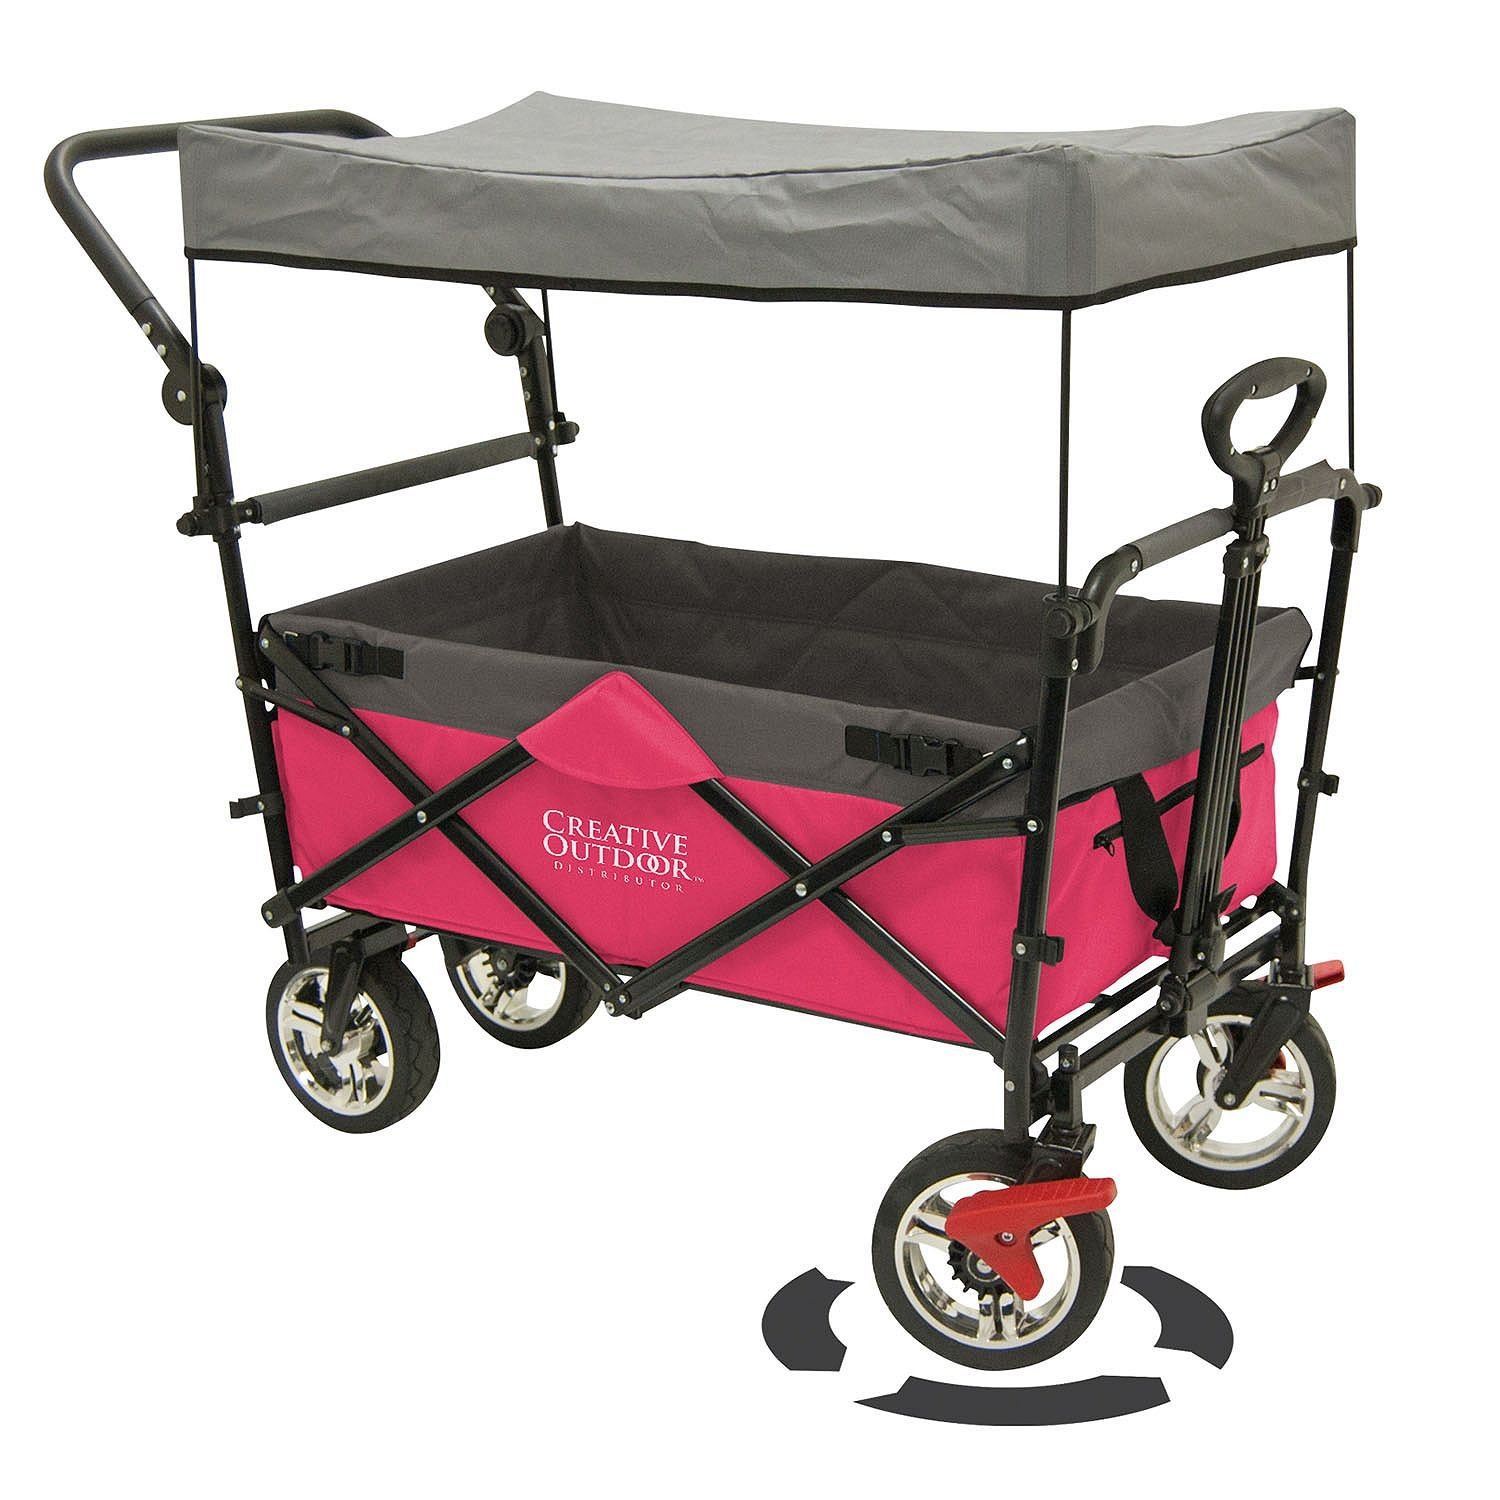 Folding Wagon for Kids, Beach, Foldable Canopy with Sun/Rain Shade (Hot Pink)